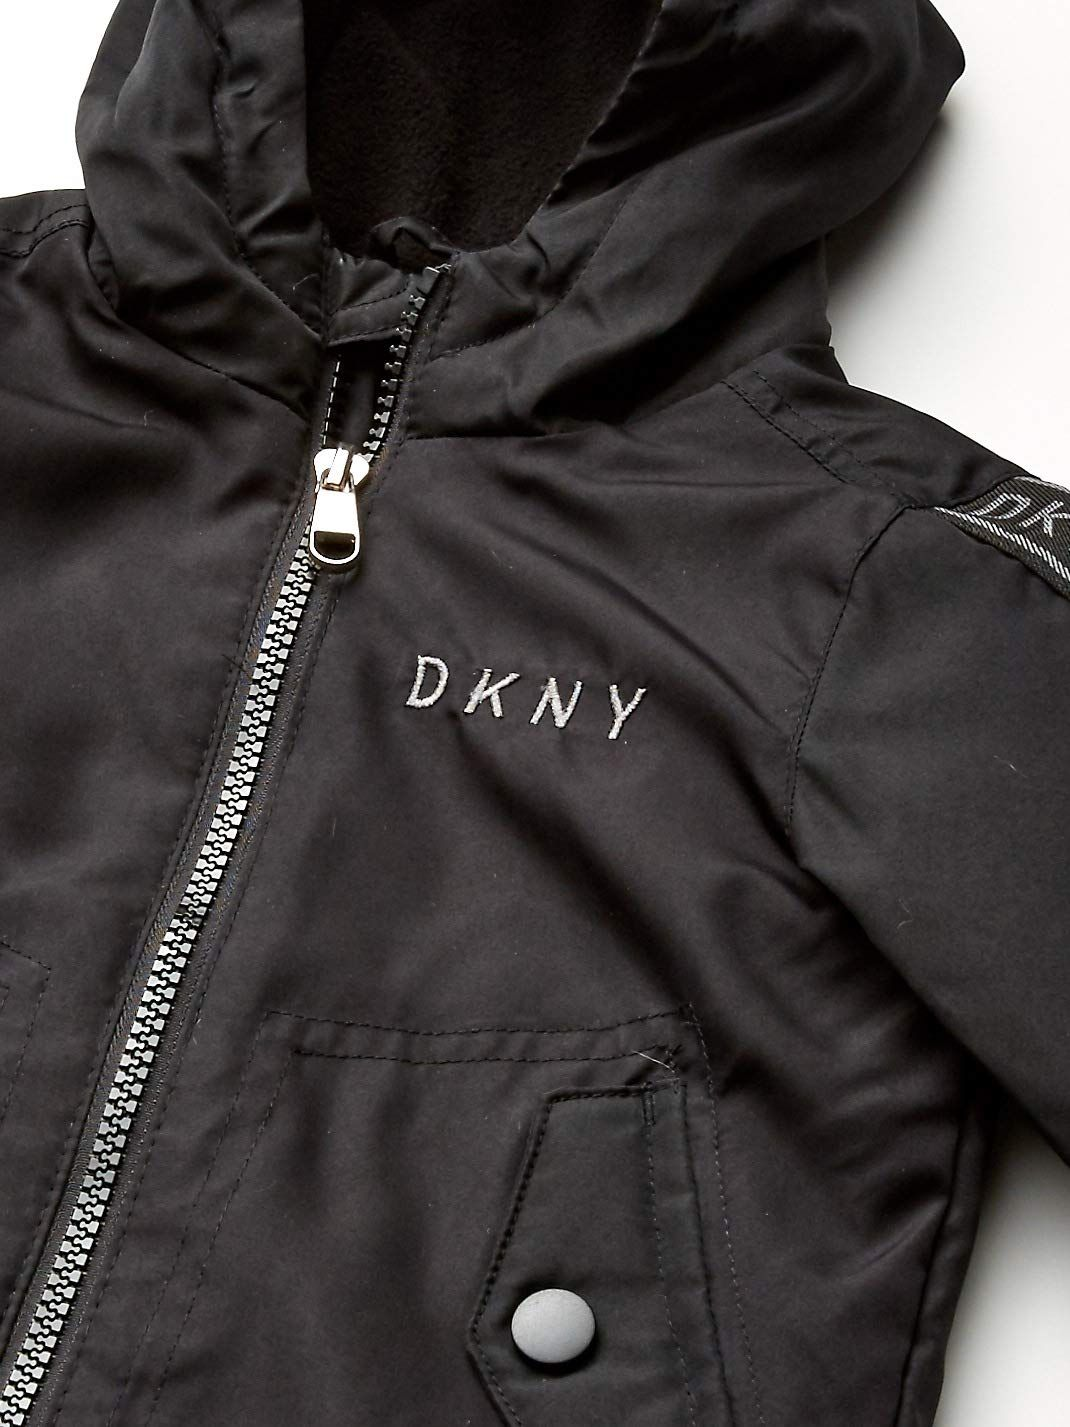 Dkny Baby Boys Fashion Outerwear Jacket Logo Sleeves Black 24m You Can Obtain More Information By Clickin Outerwear Fashion Boy Fashion Outerwear Jackets [ 1427 x 1070 Pixel ]